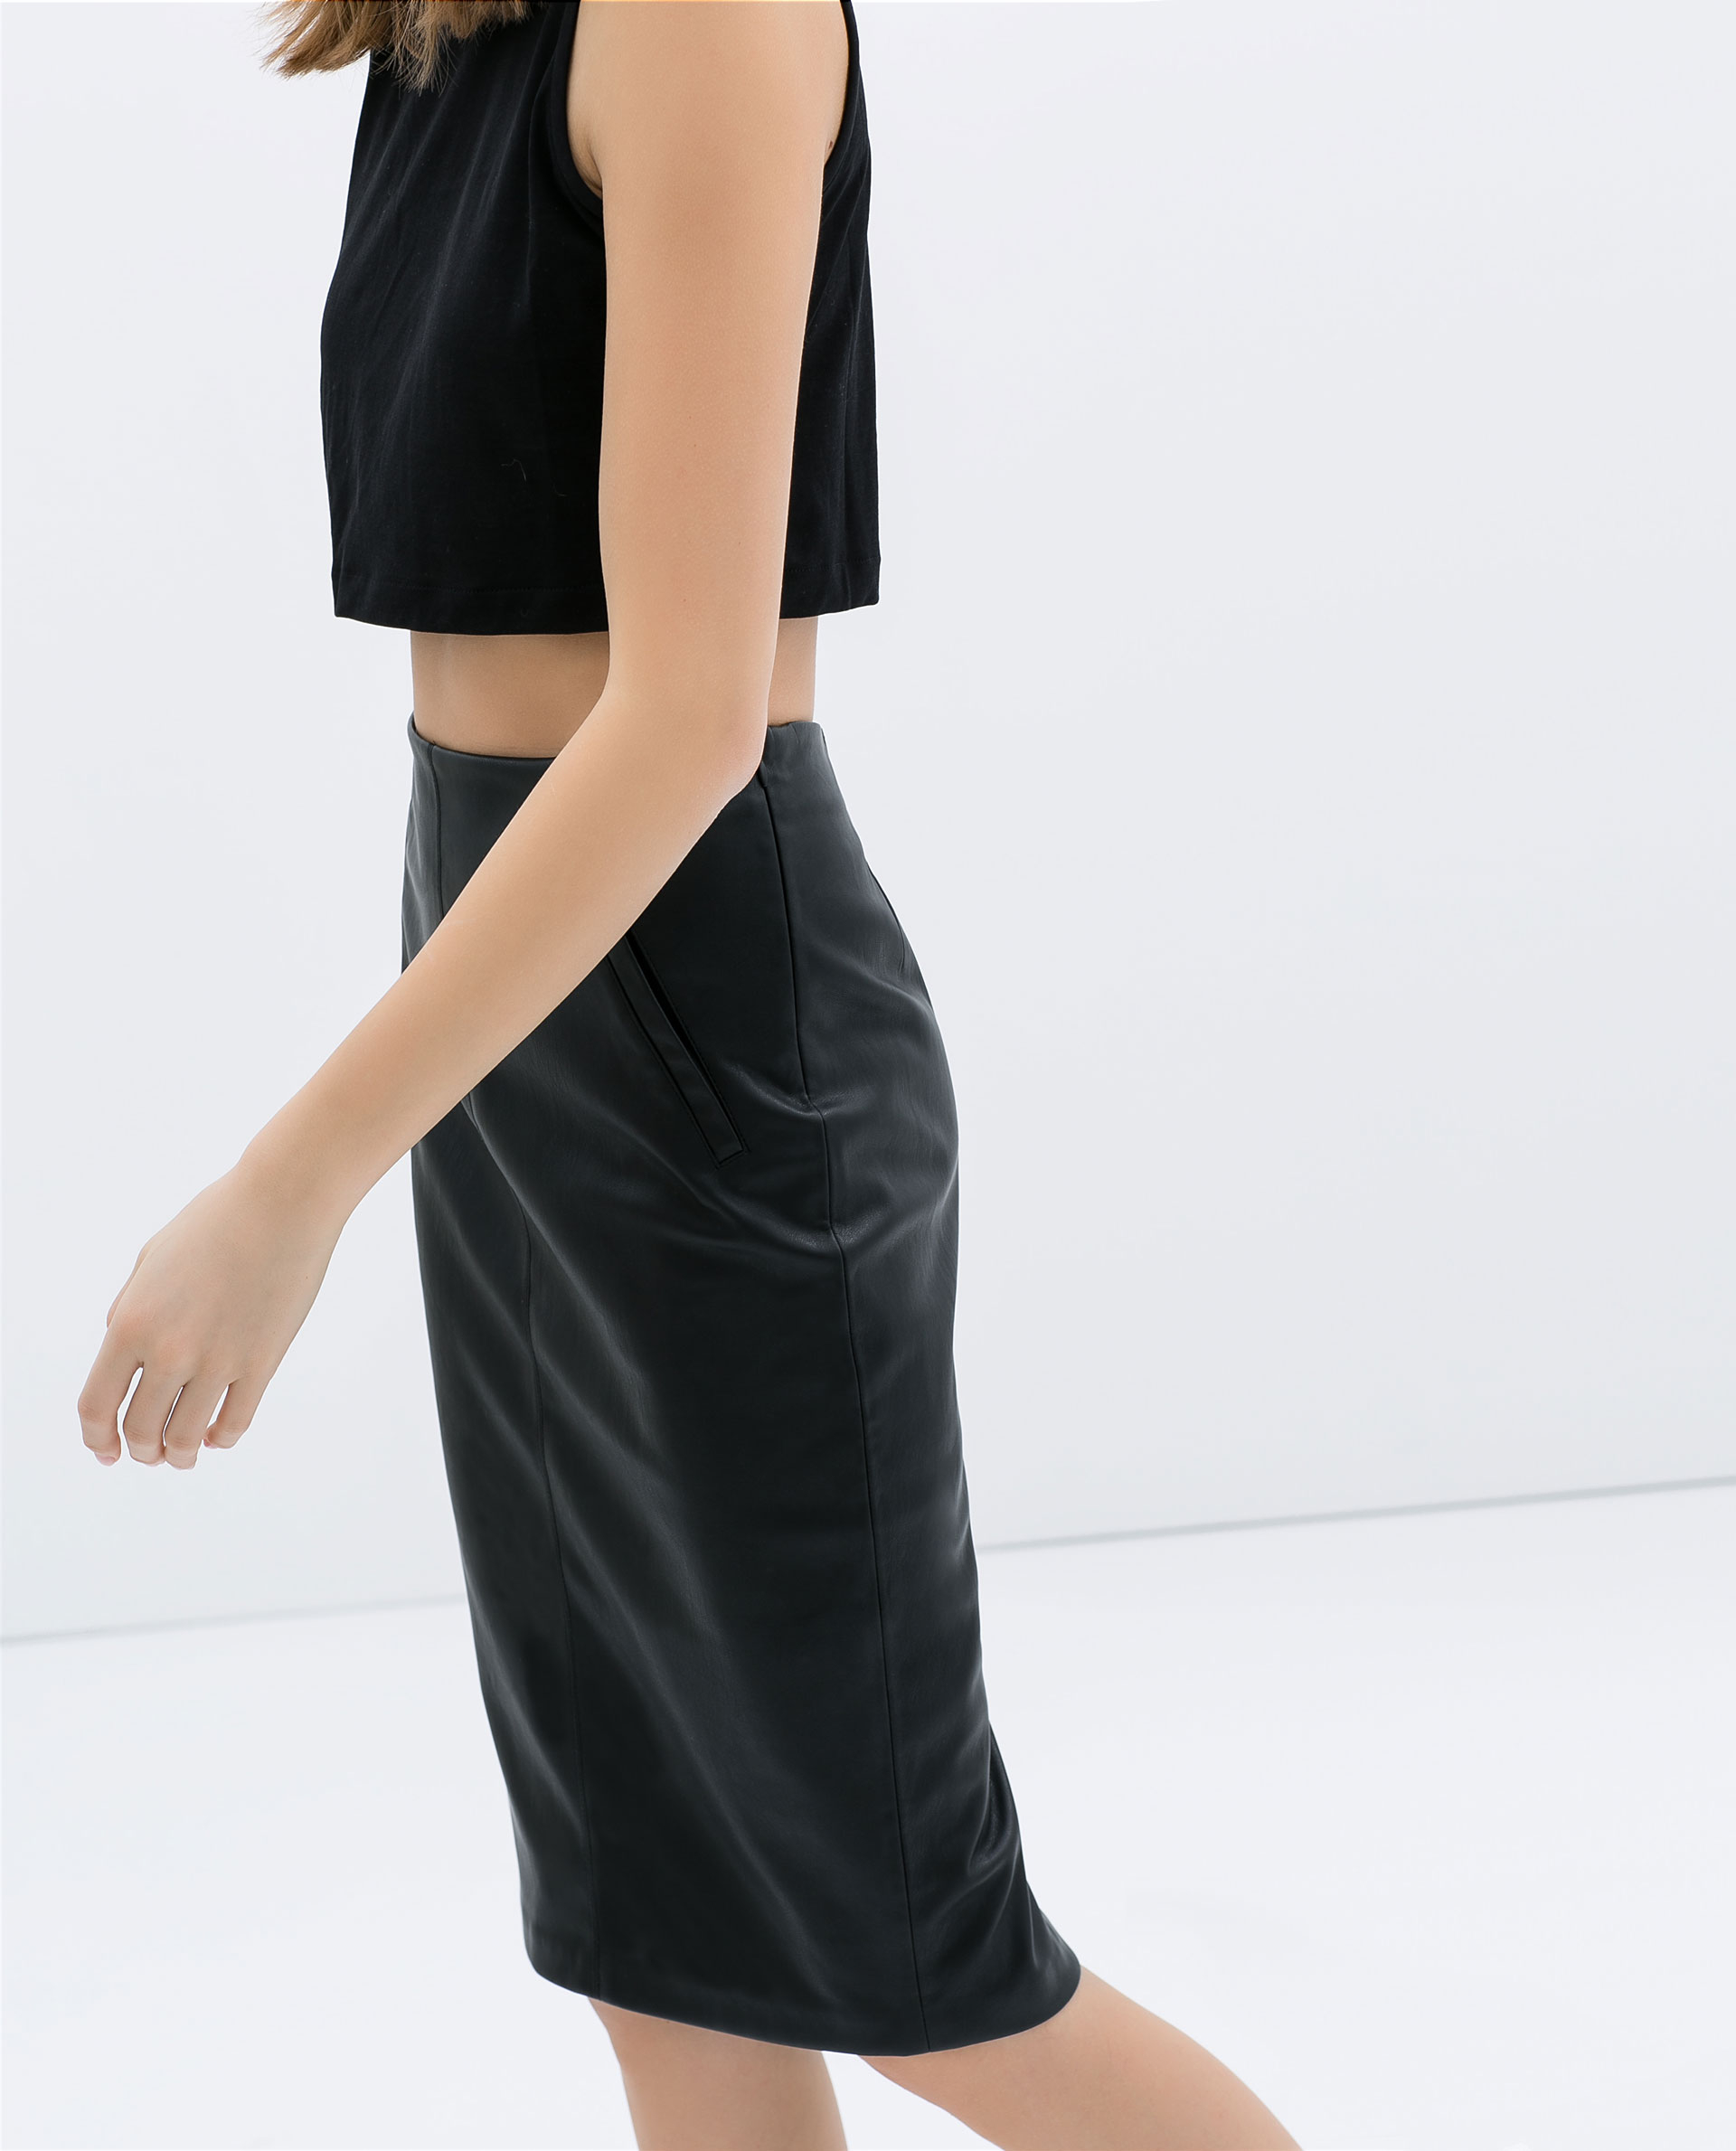 Zara Faux Leather Pencil Skirt with Pockets in Black | Lyst